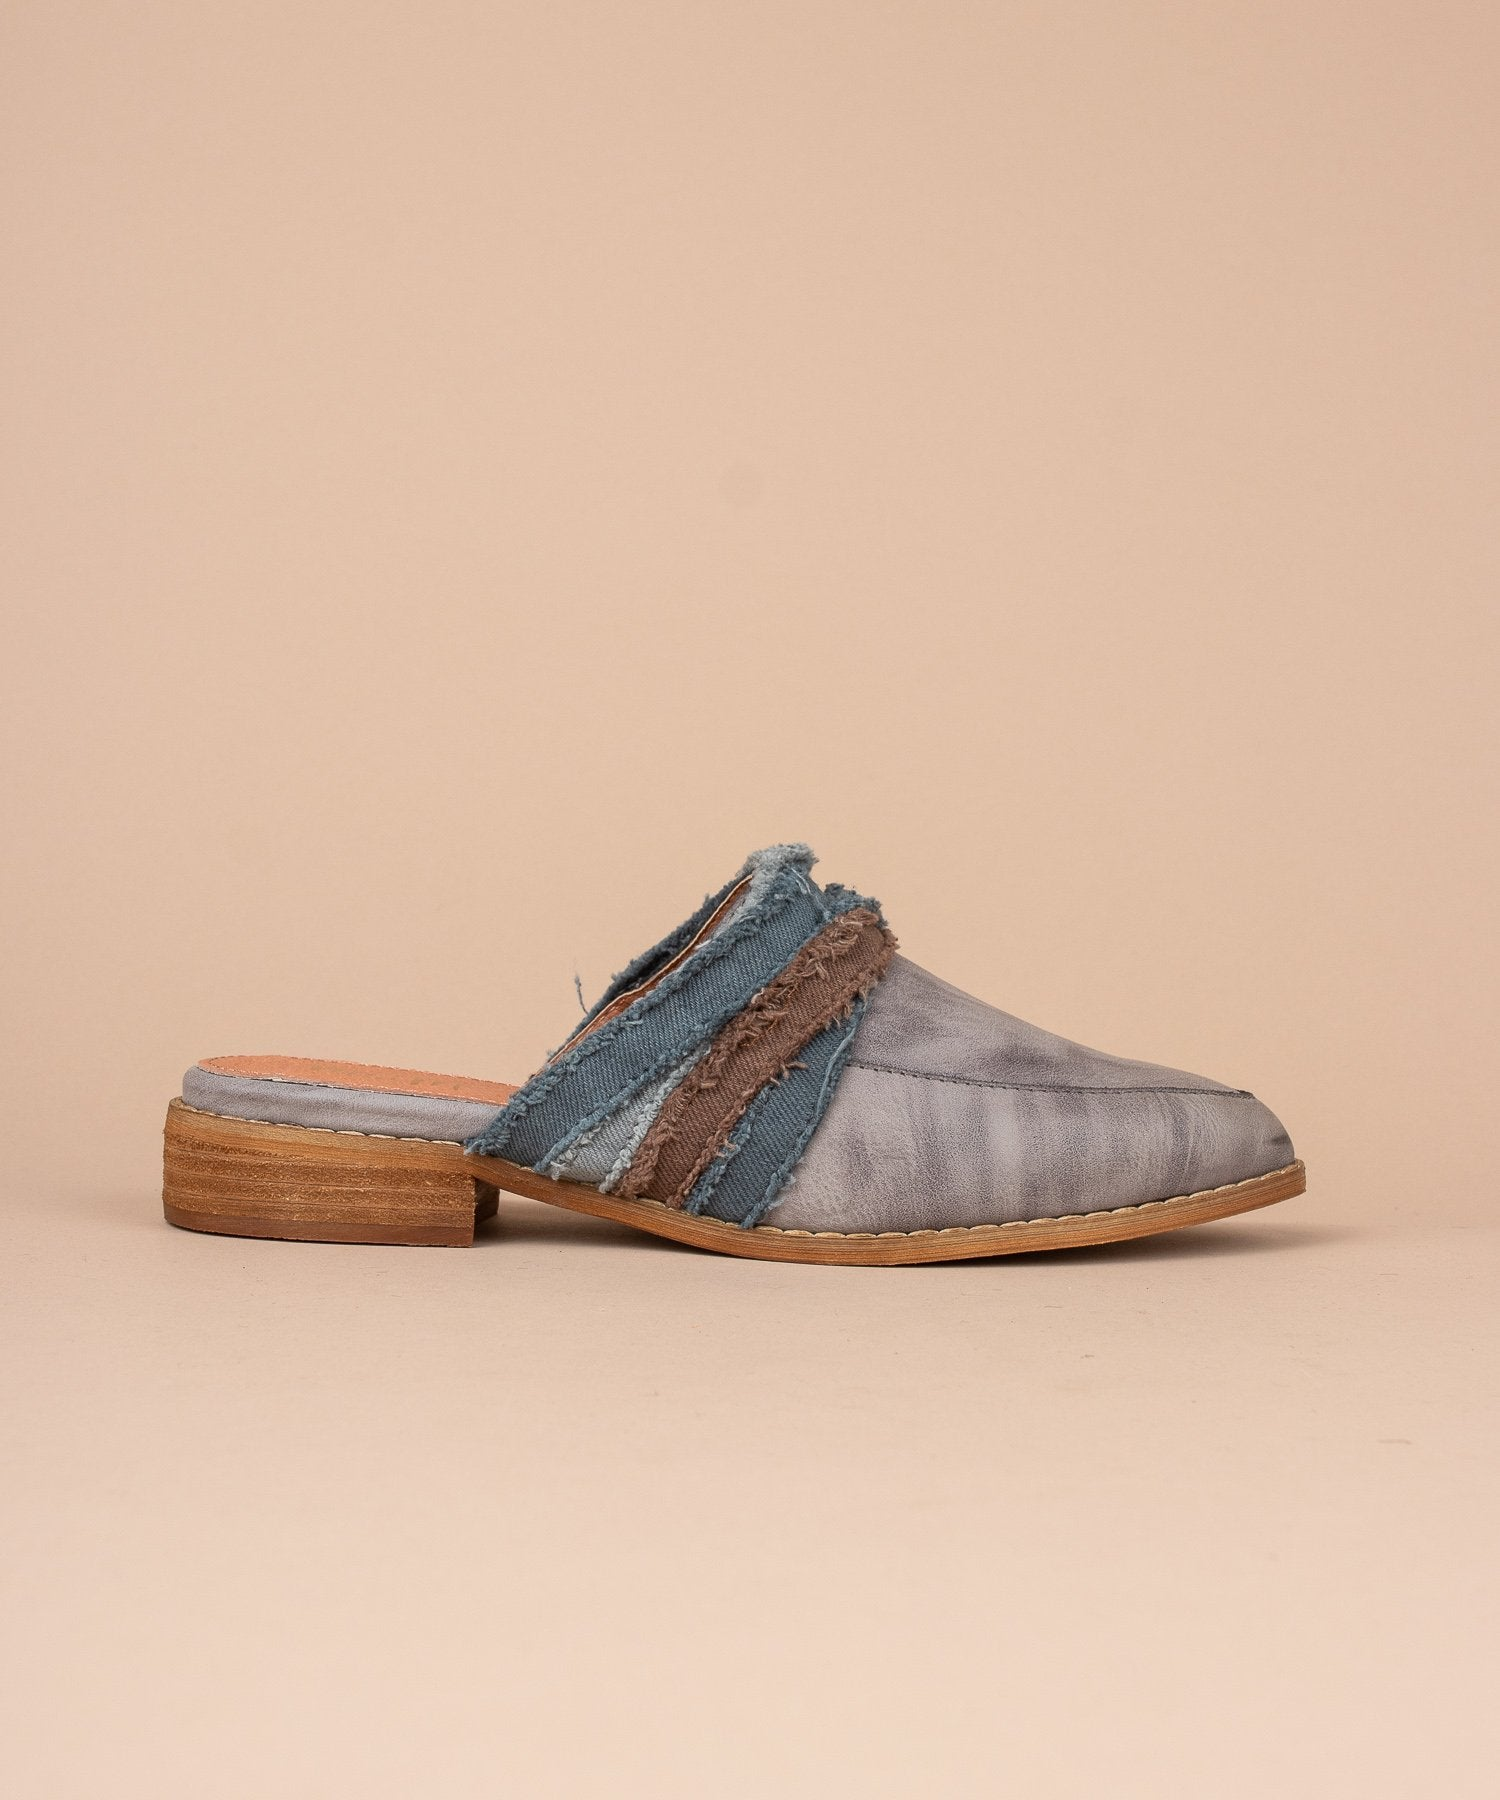 Tilli Fabric Wrapped Vintage Loafer in Grey / FINAL SALE